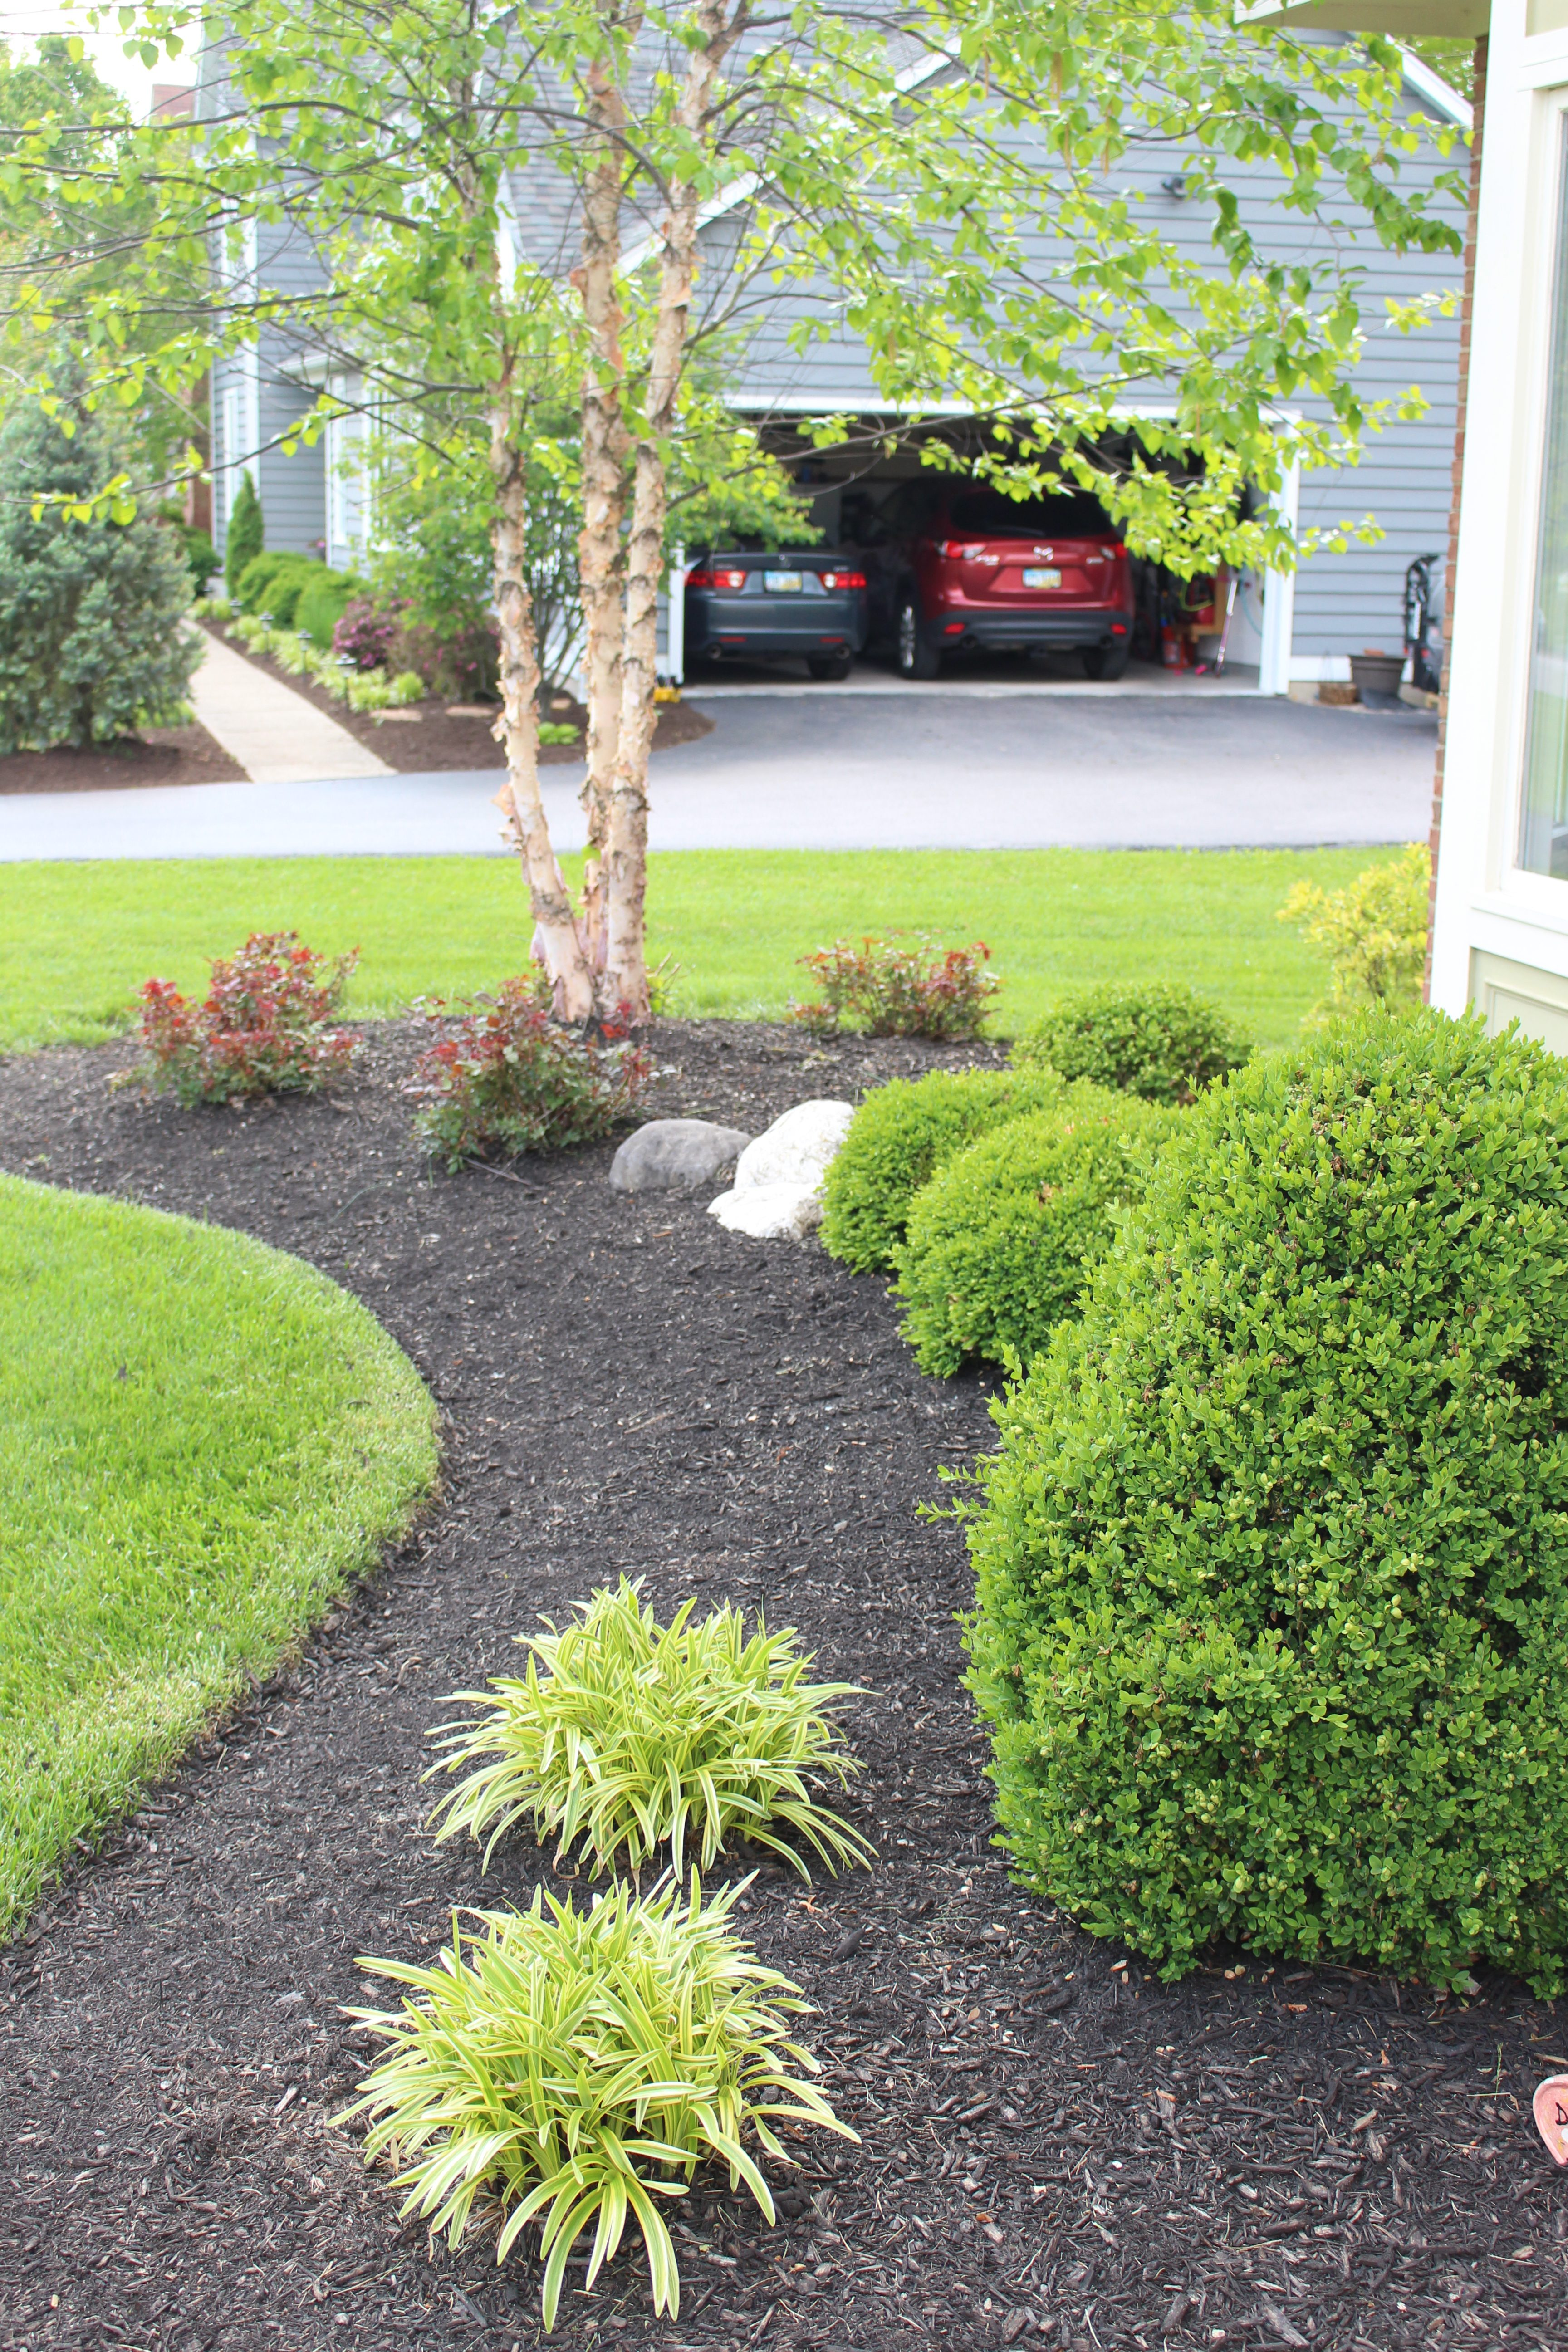 Curb Appeal Challenge: Landscaping for Front of Our Home by www.whitecottagehomeandliving.com